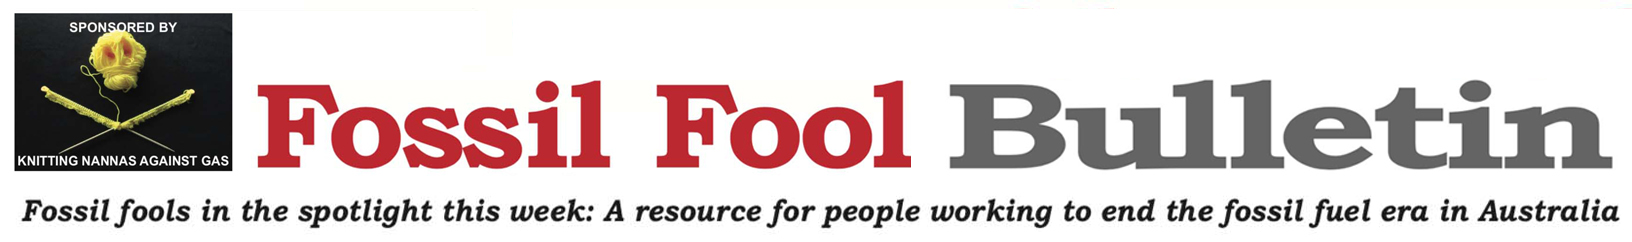 Fossil Fool Bulletin